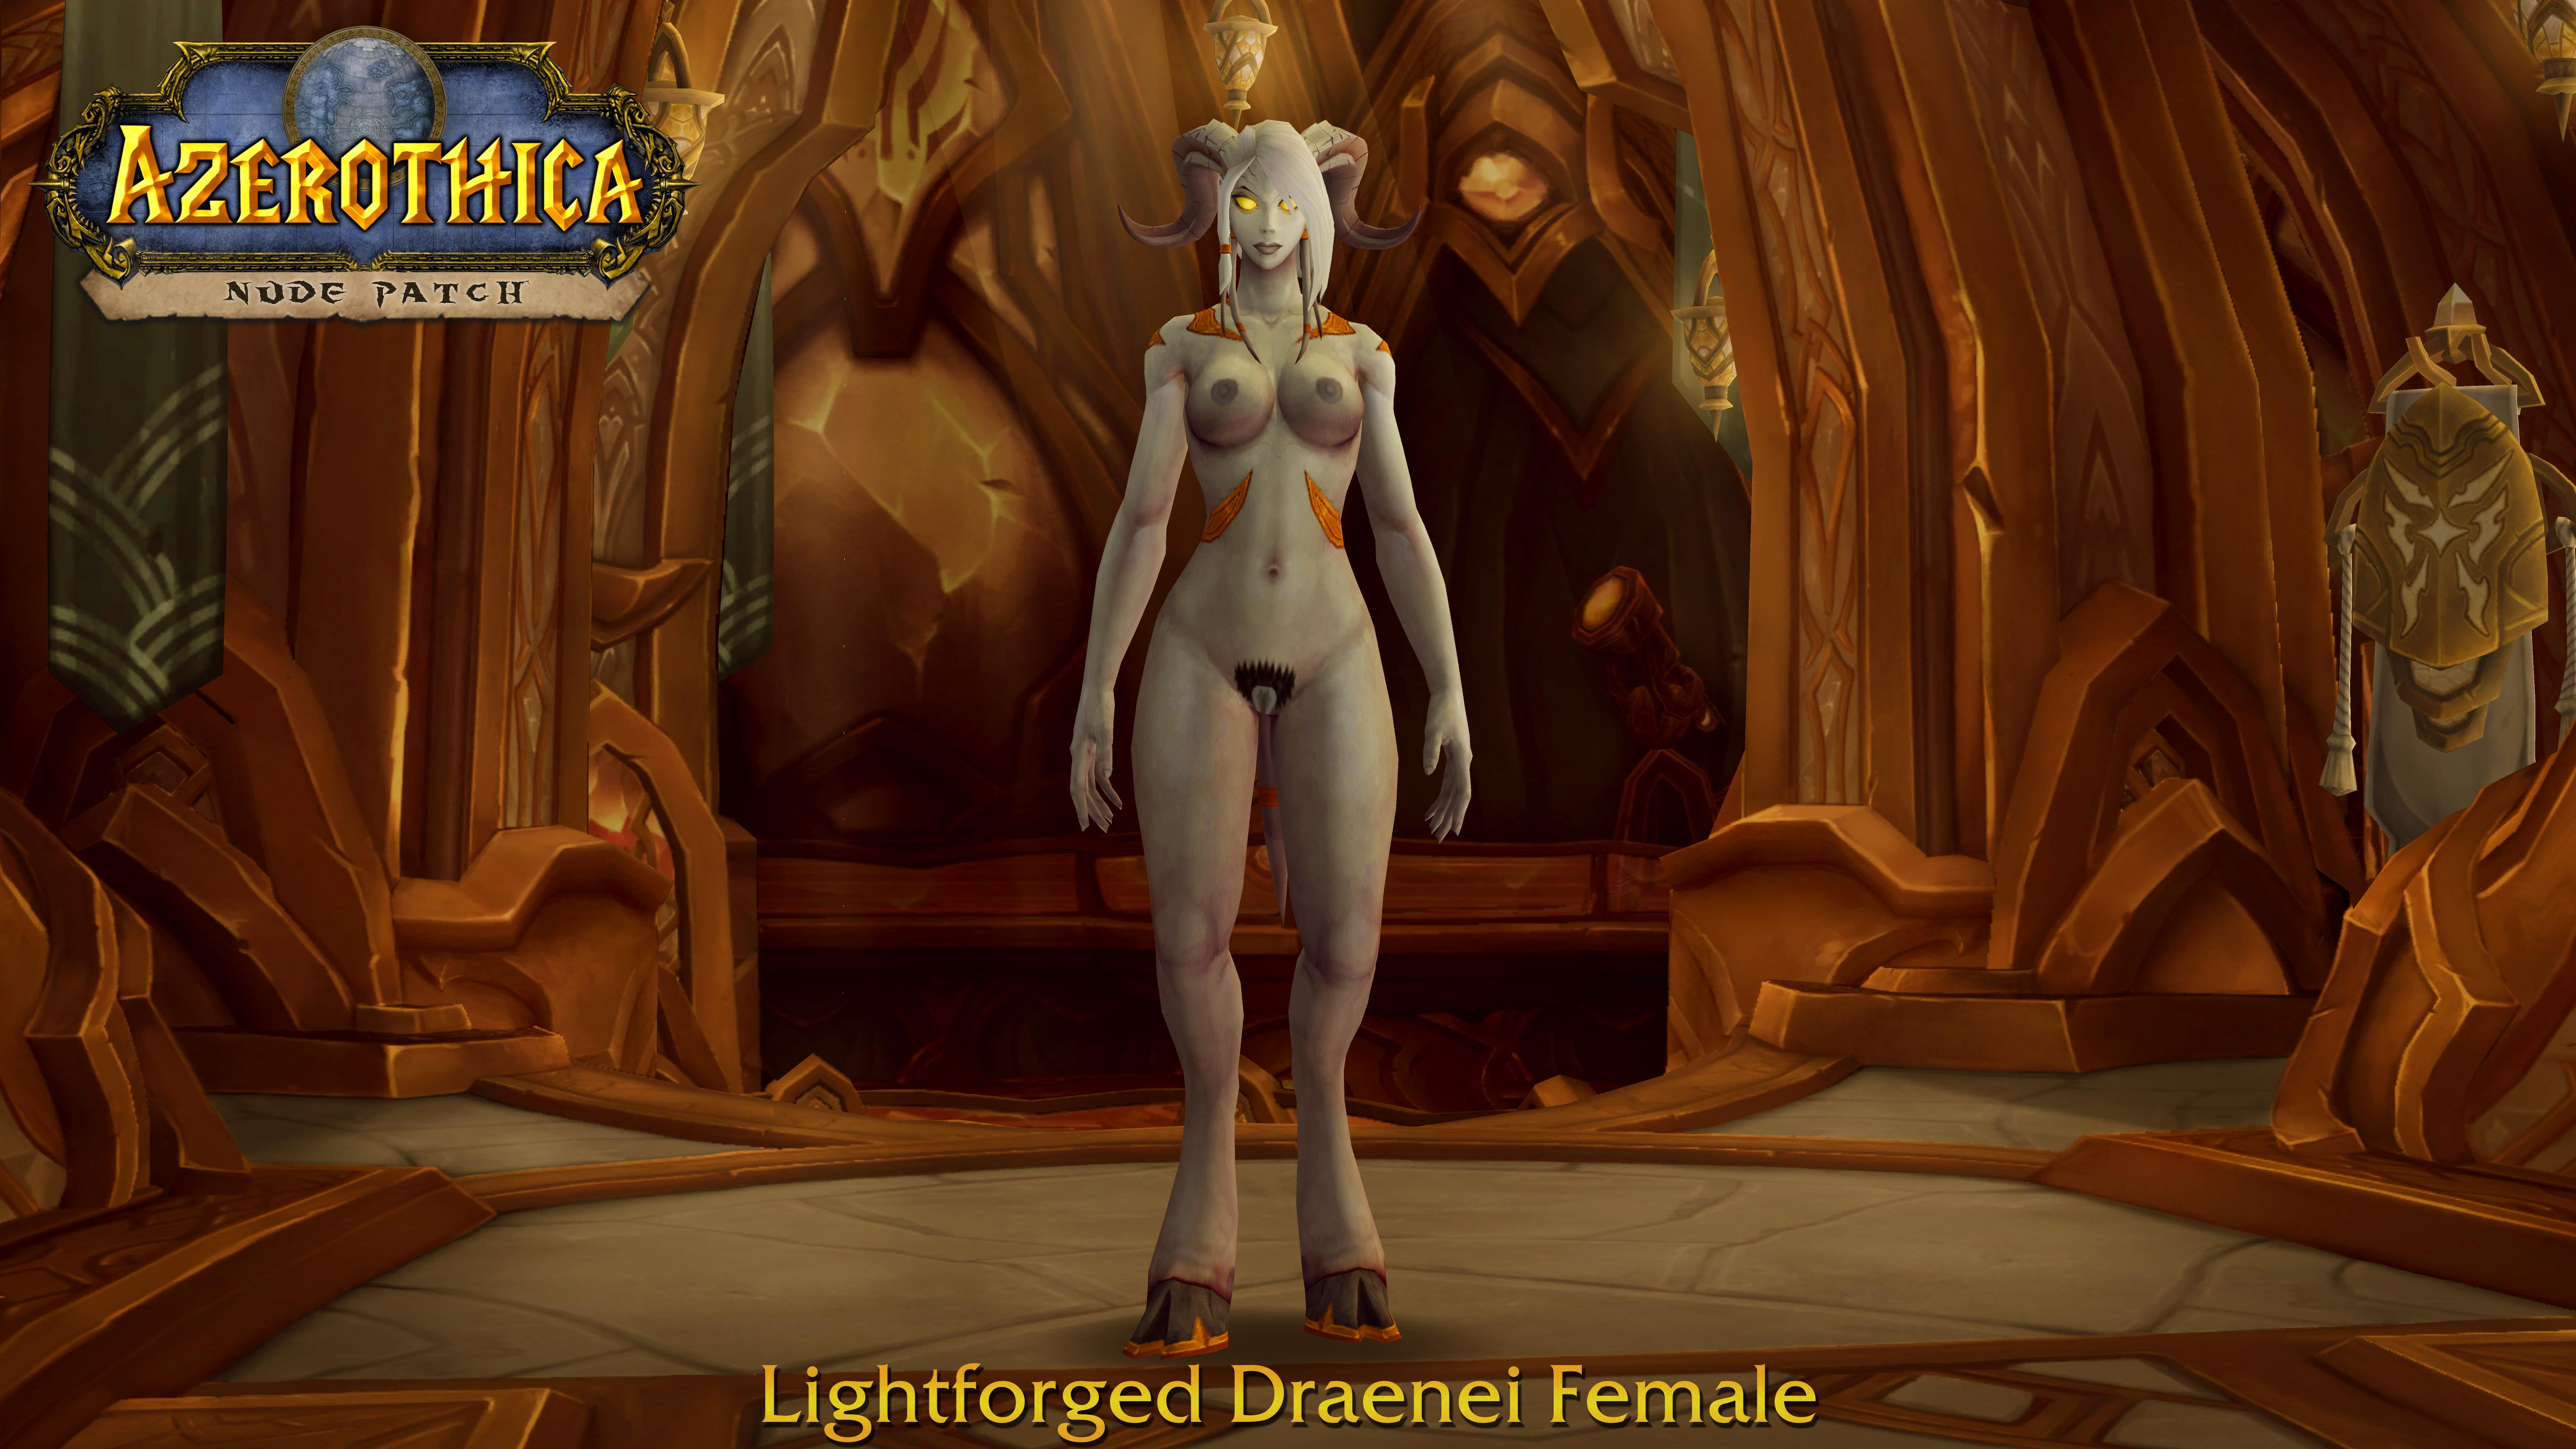 World of warcraft nude mod download